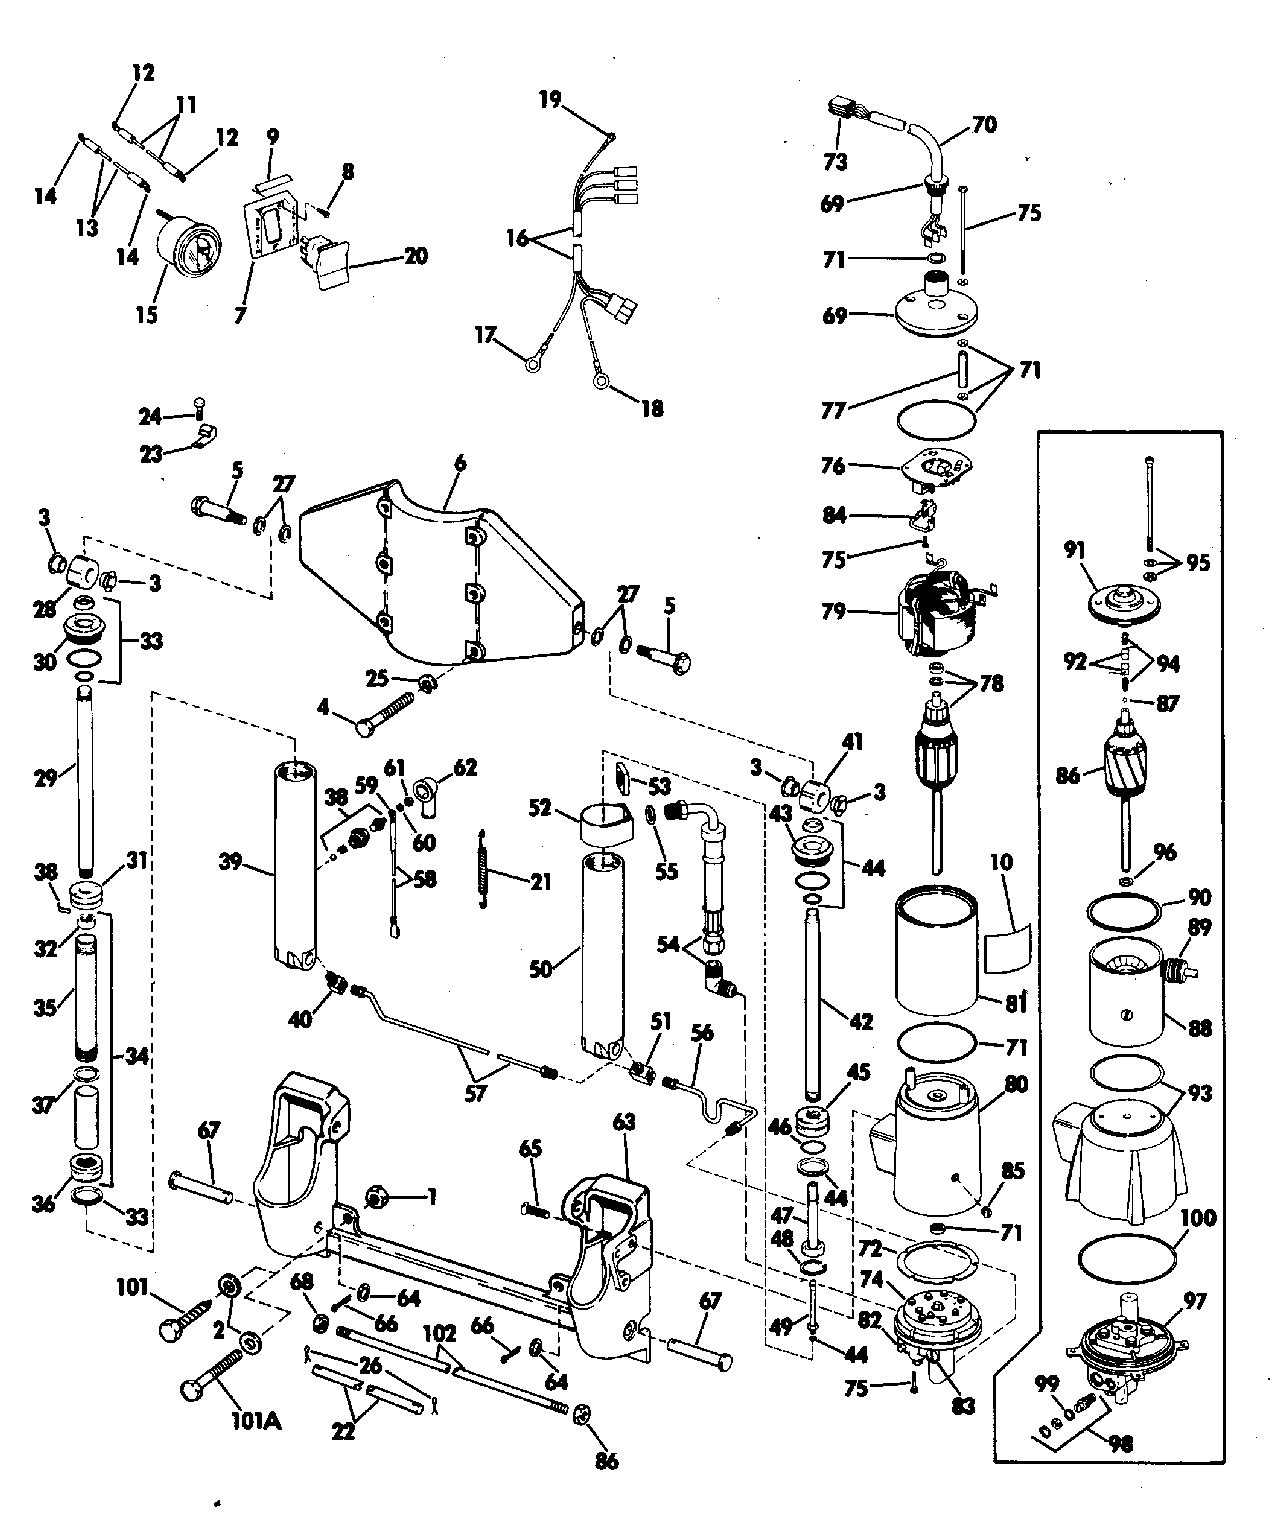 hight resolution of engine section